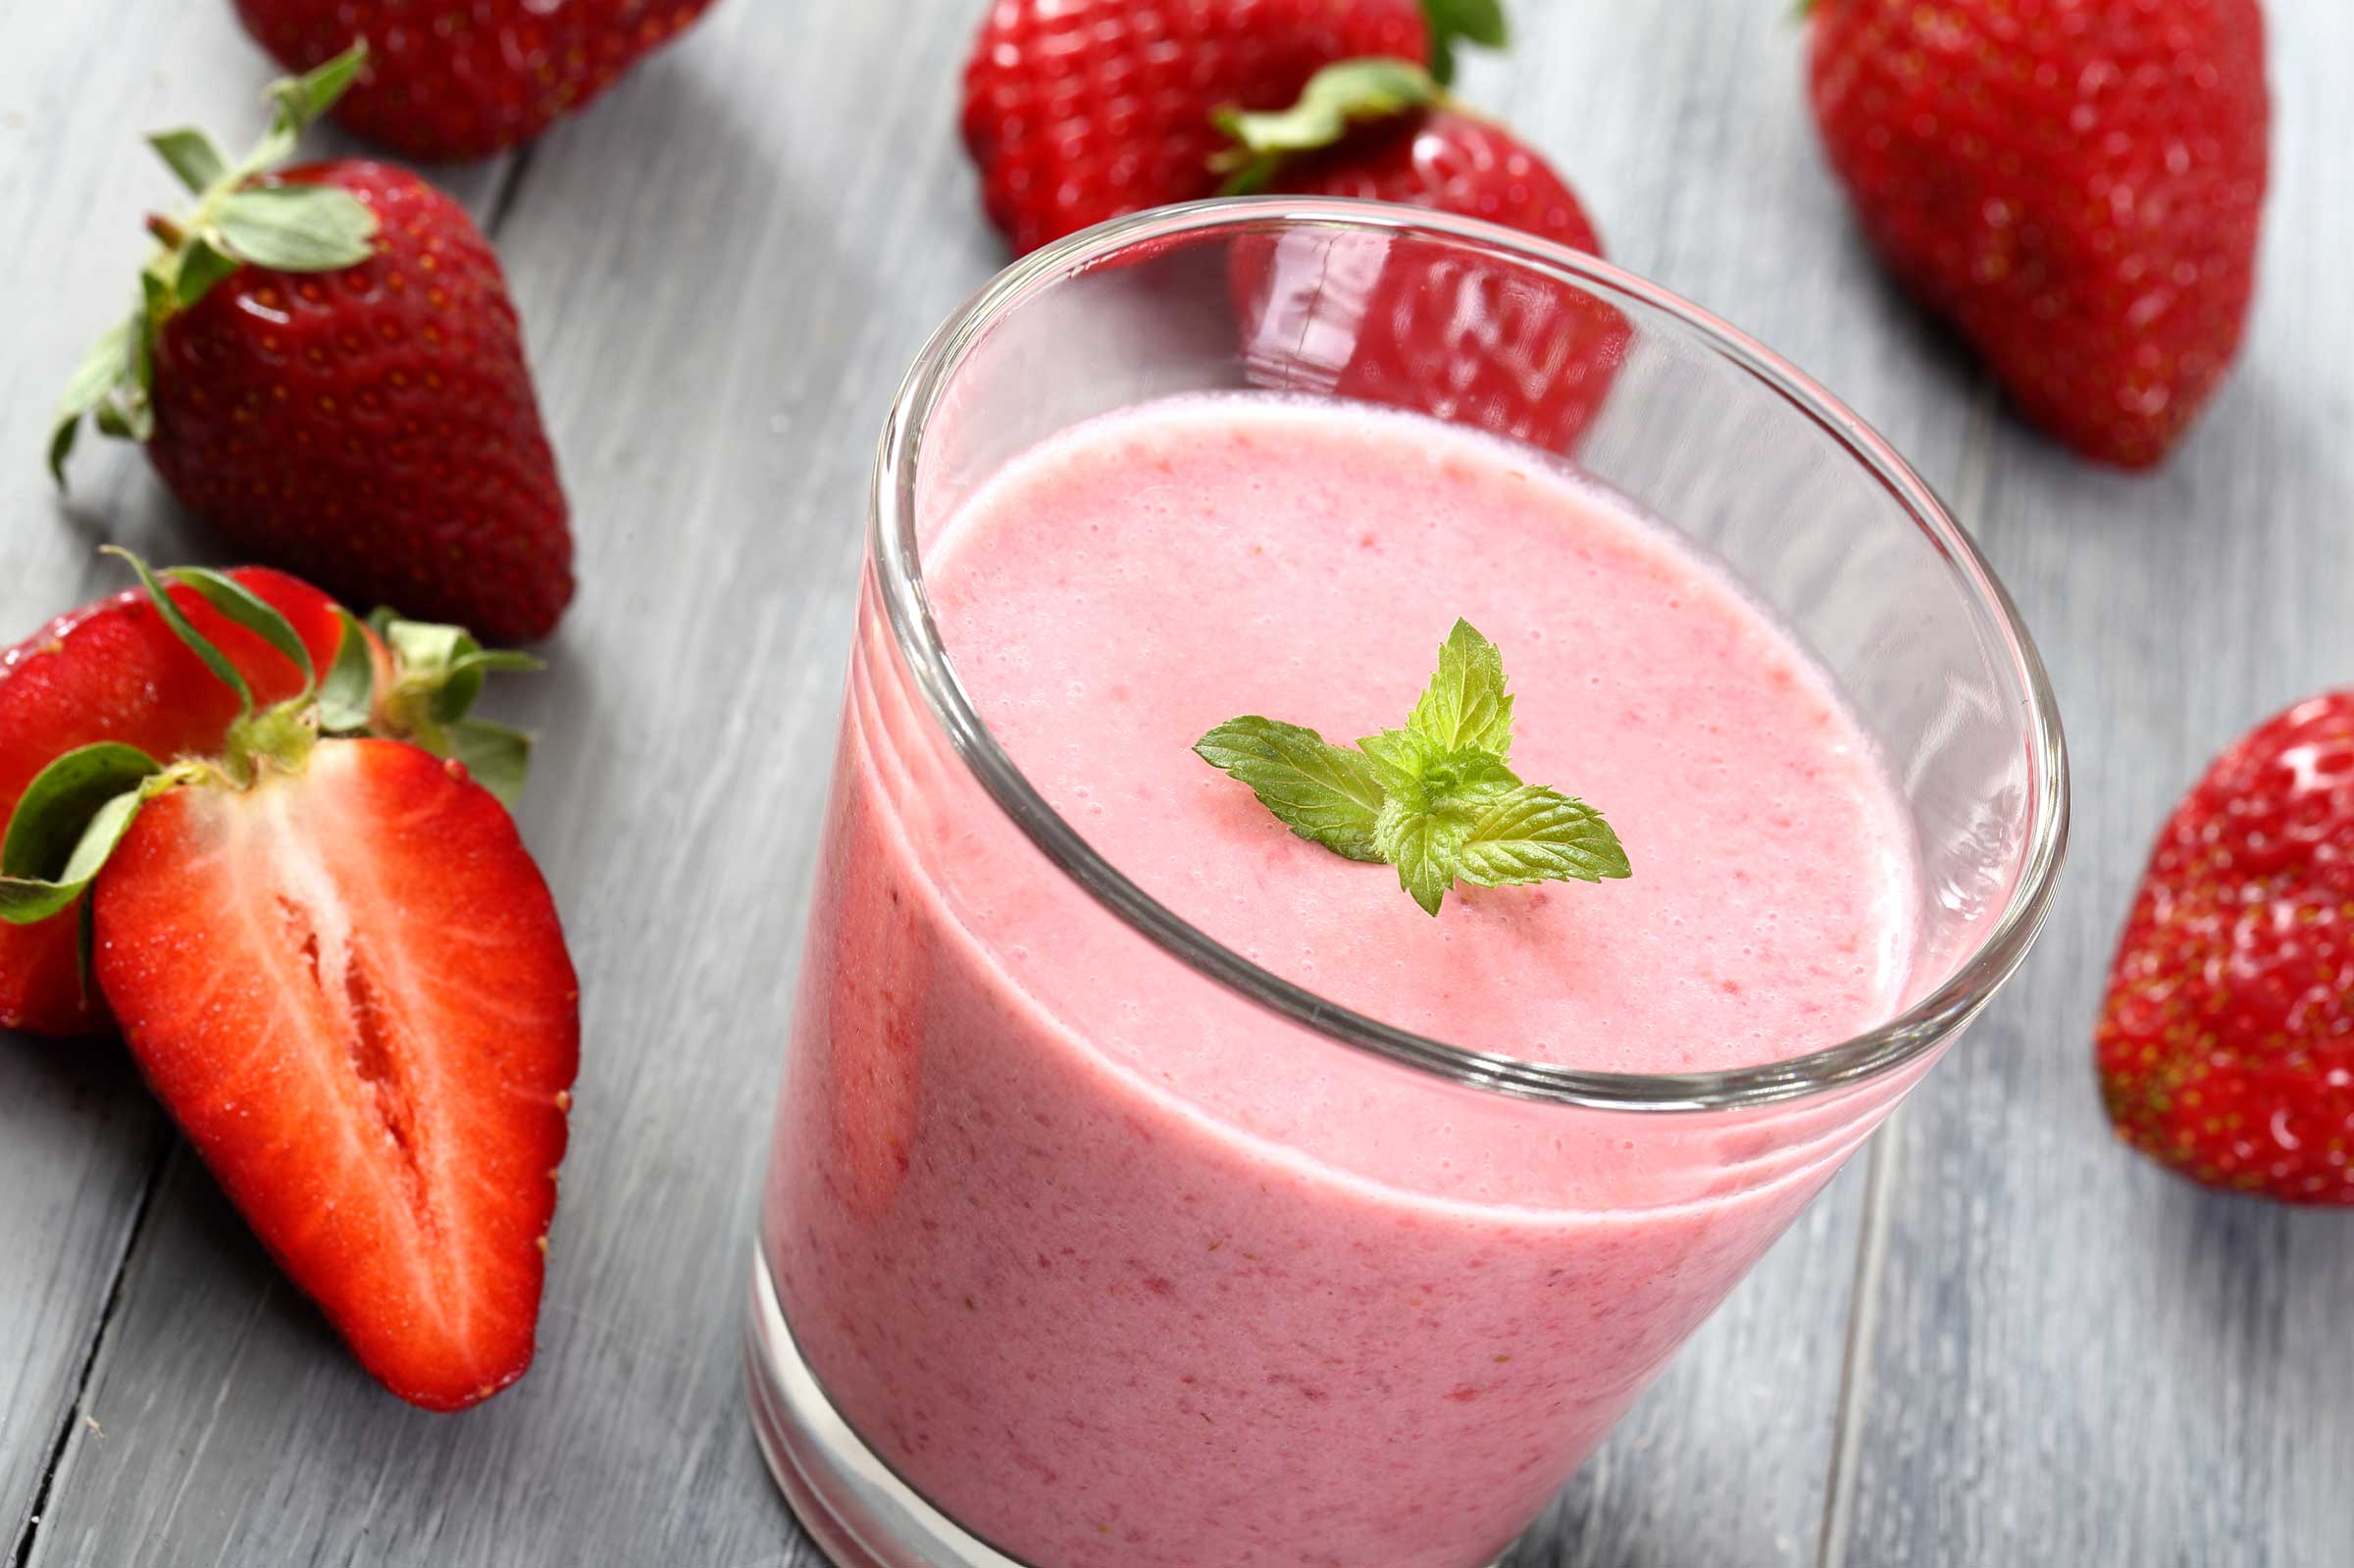 01-fruit-smoothies-strawberry.jpg